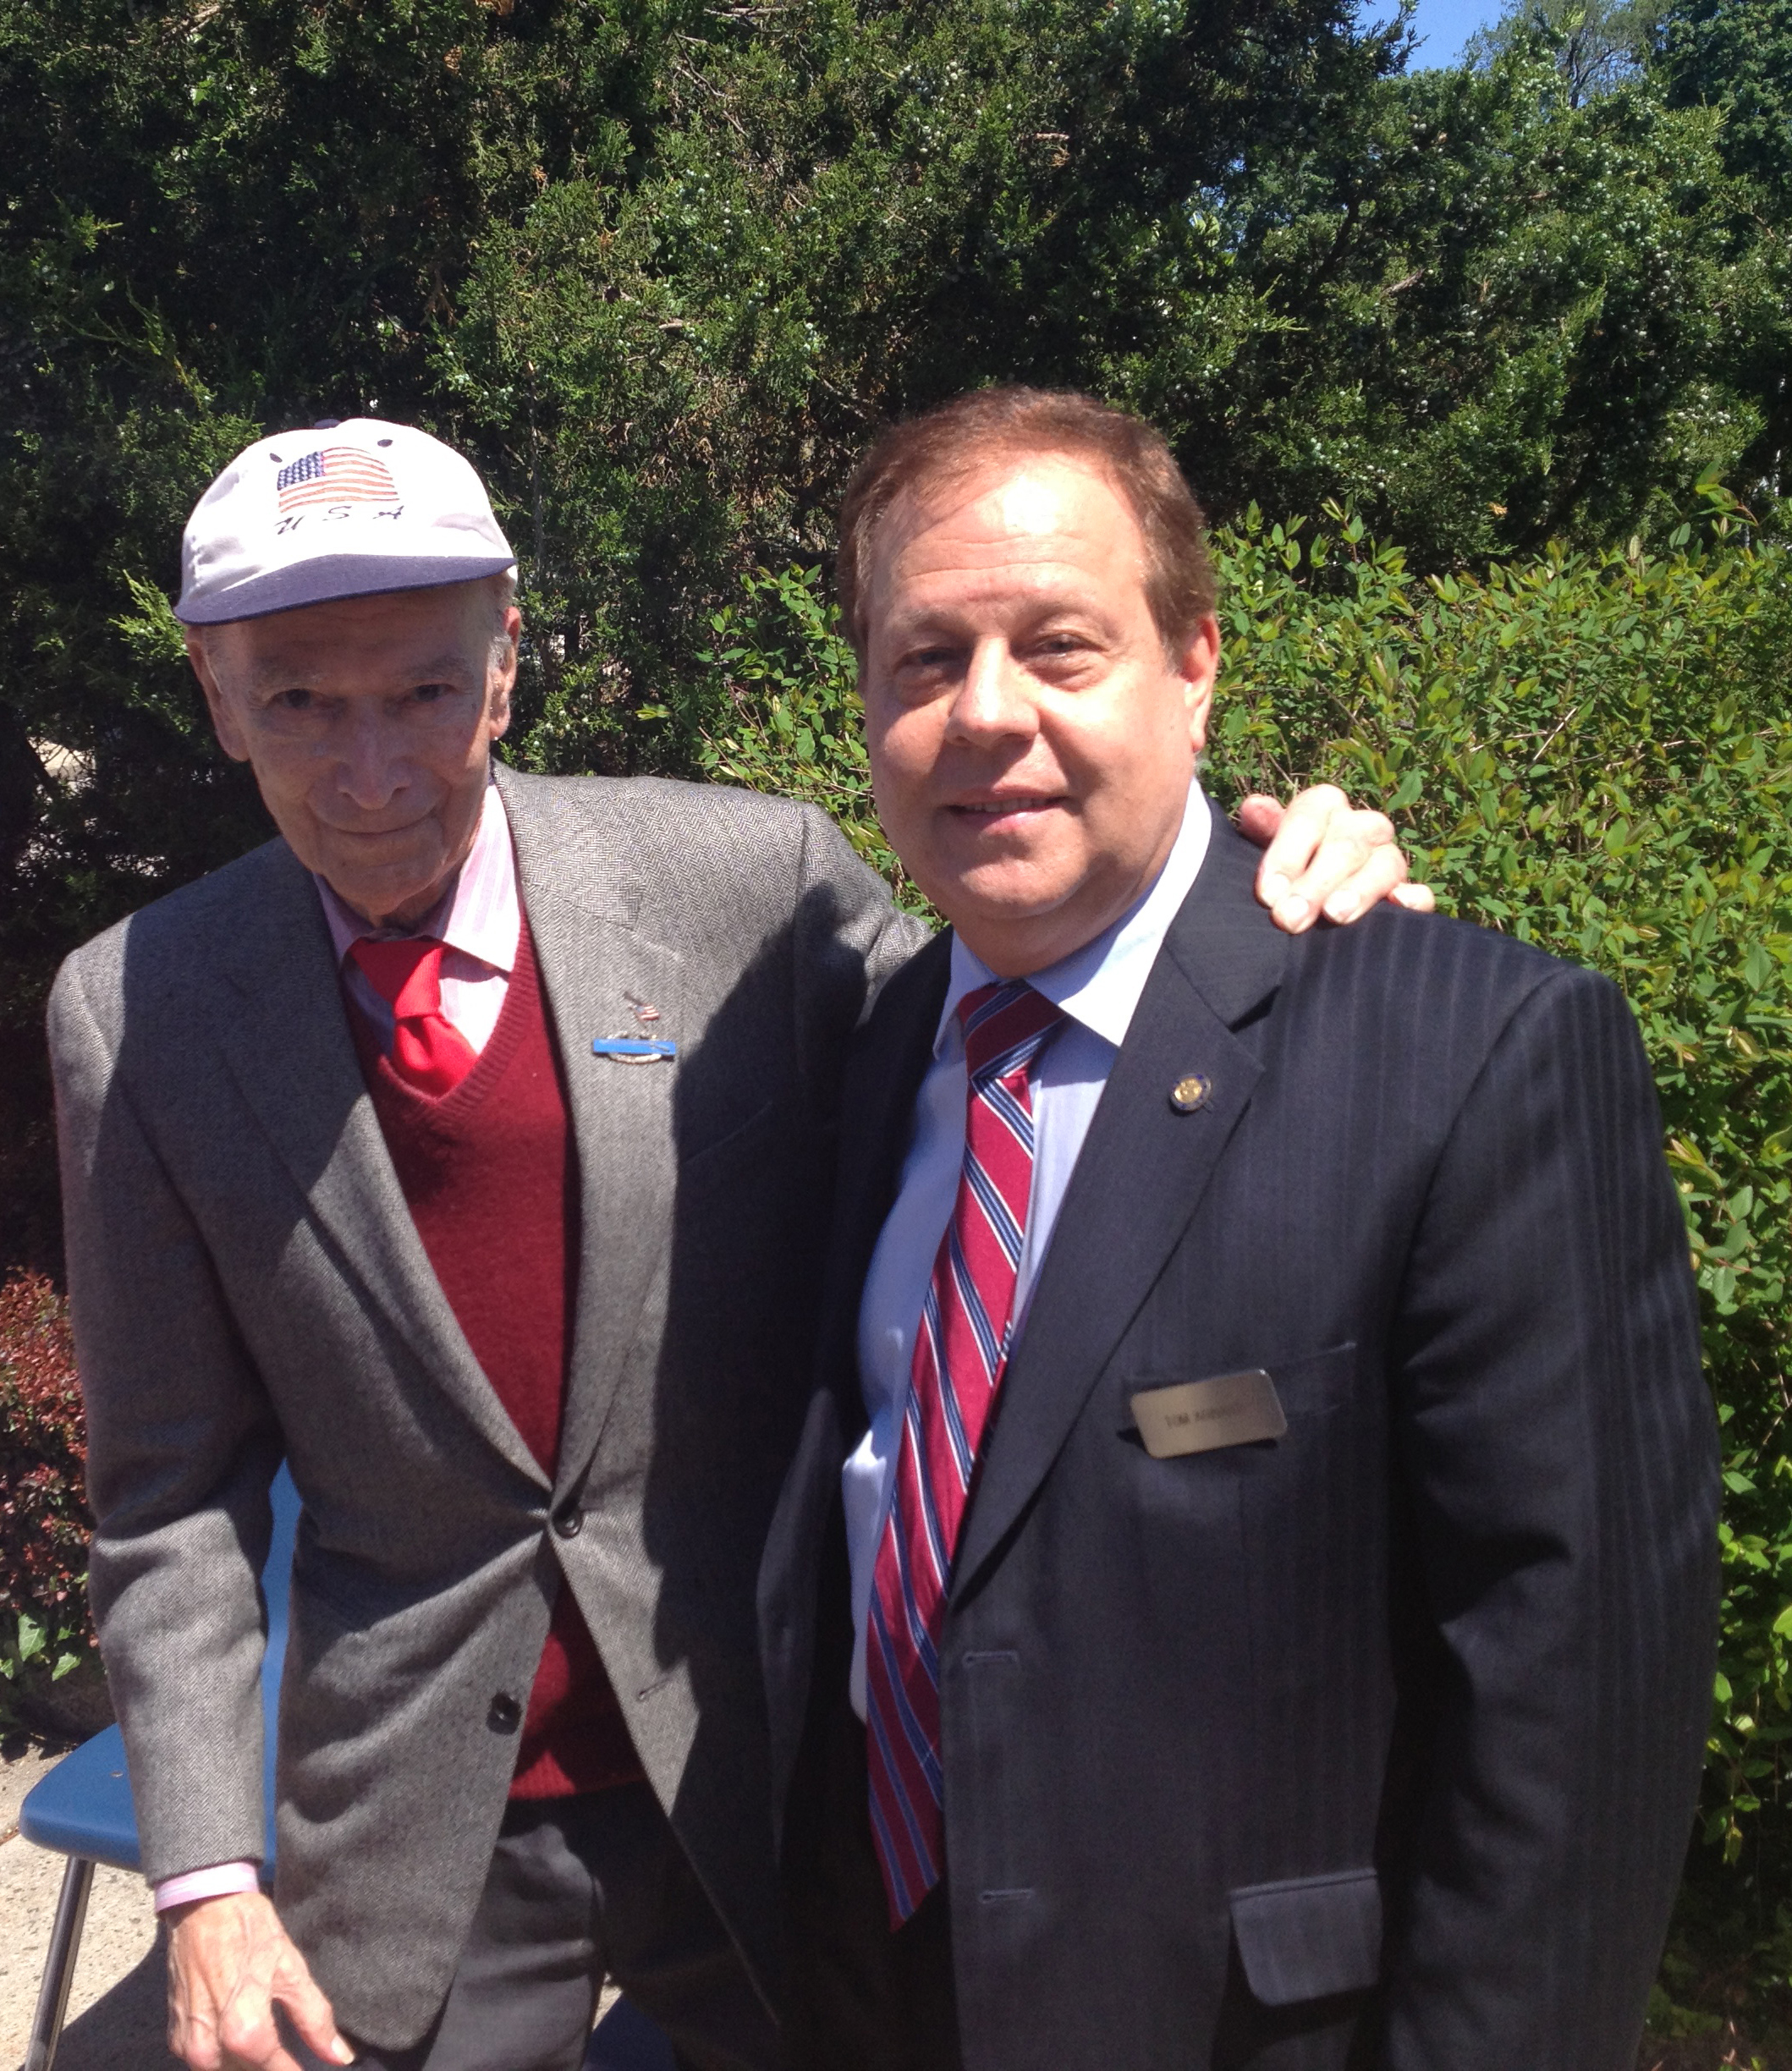 Assemblyman Tom Abinanti with former Congressman Peter Peyser at the 2013 Irvington Memorial Day Celebration and Parade.